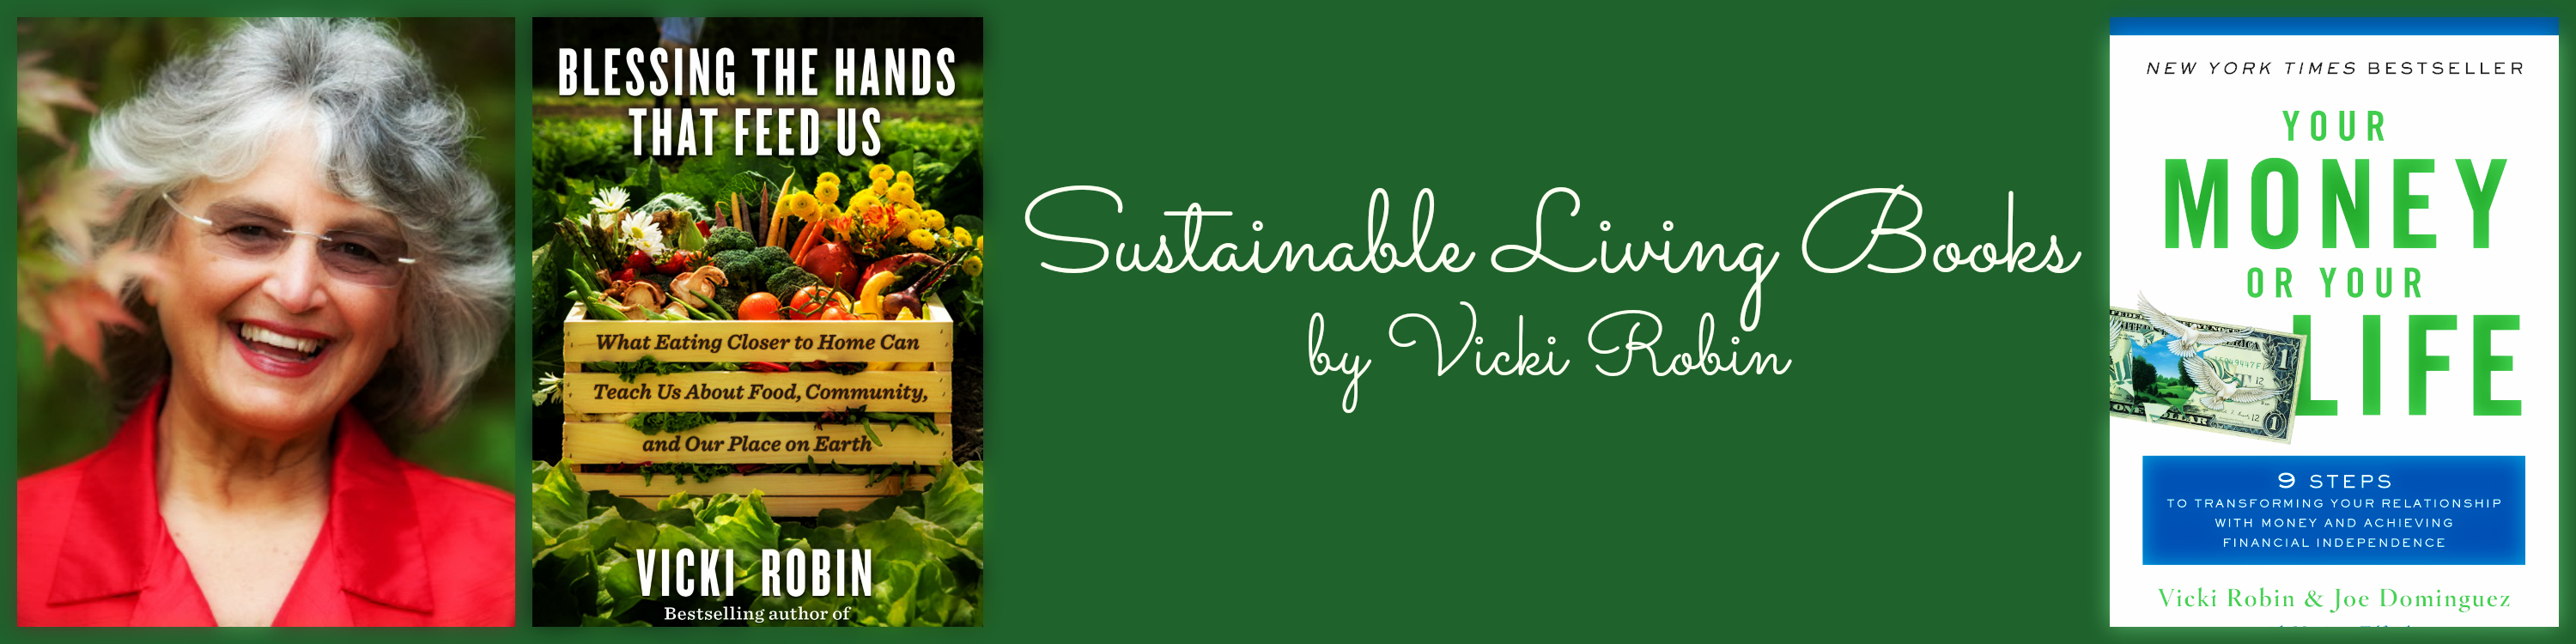 sustainble living books by vicki robin.jpg